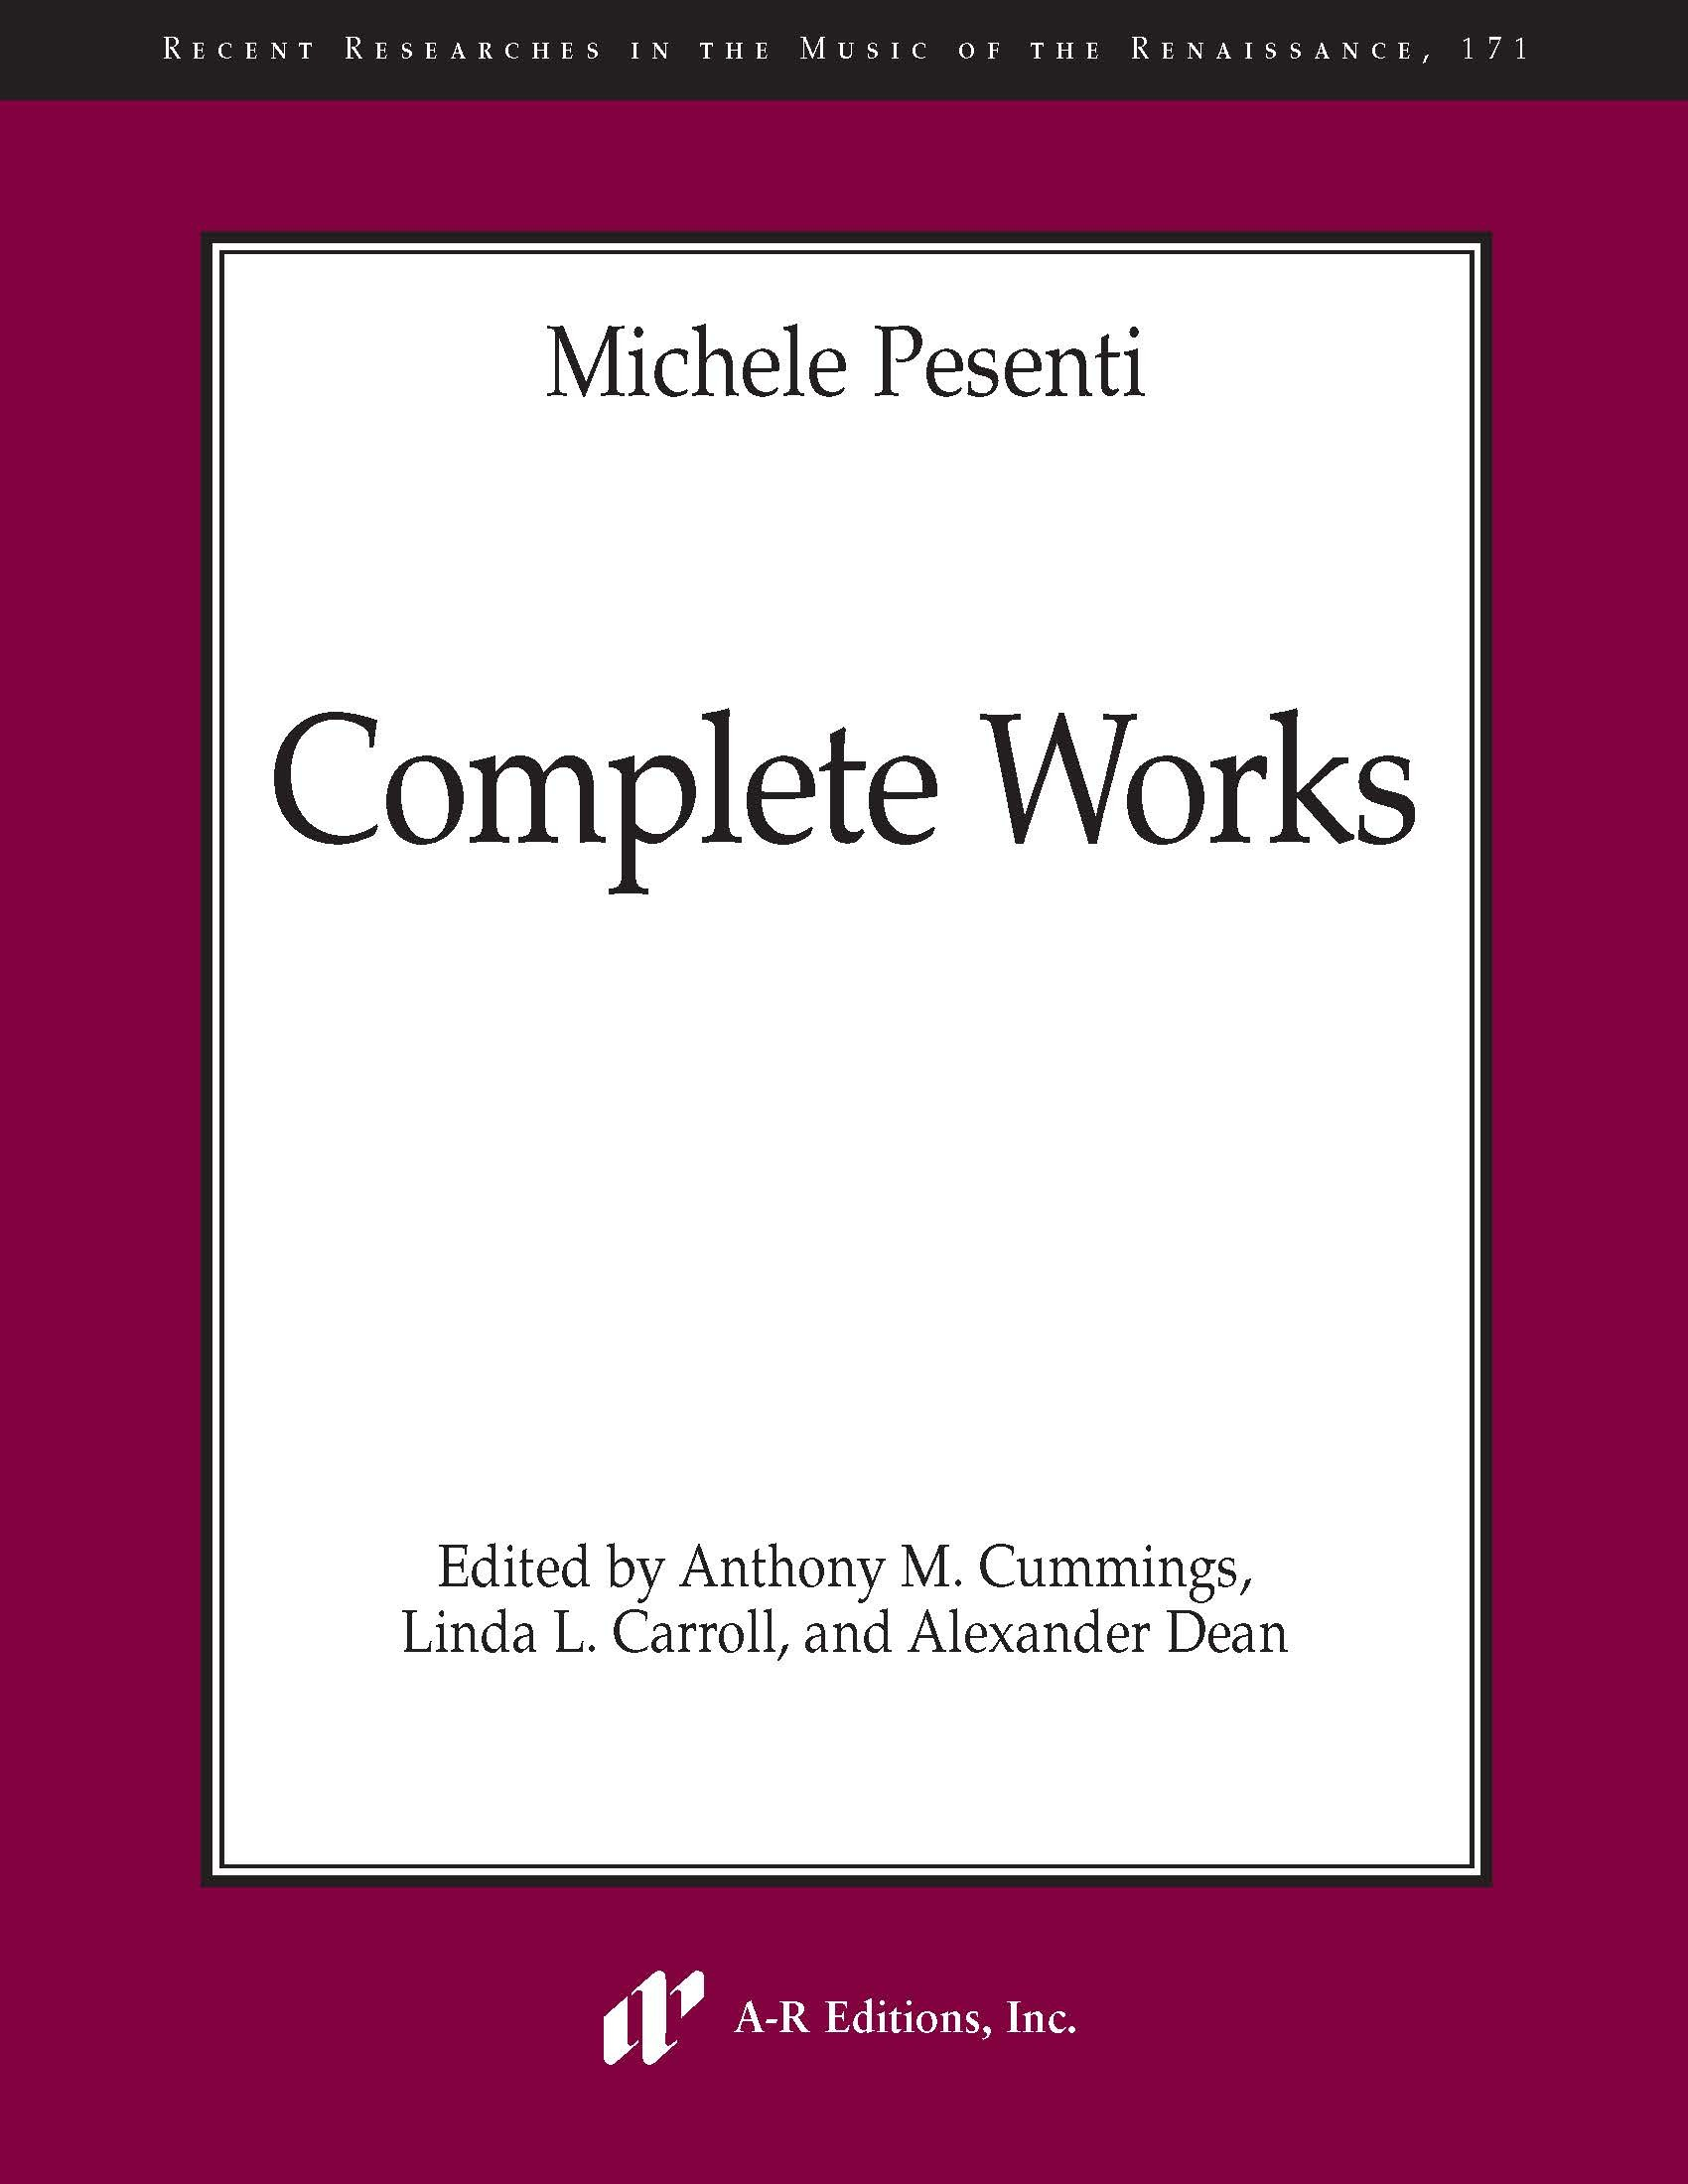 Pesenti: Complete Works